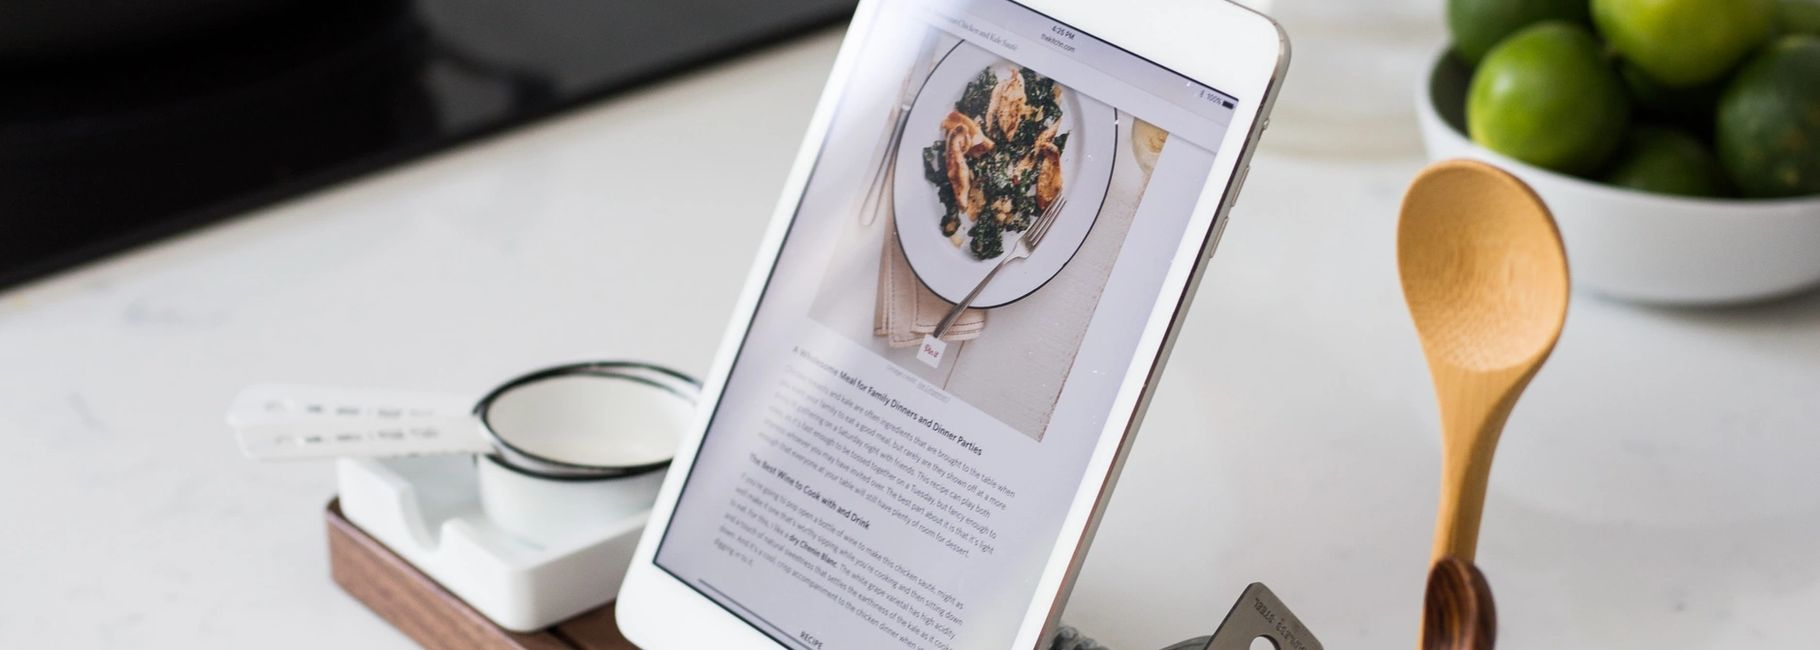 online healthy cooking instruction